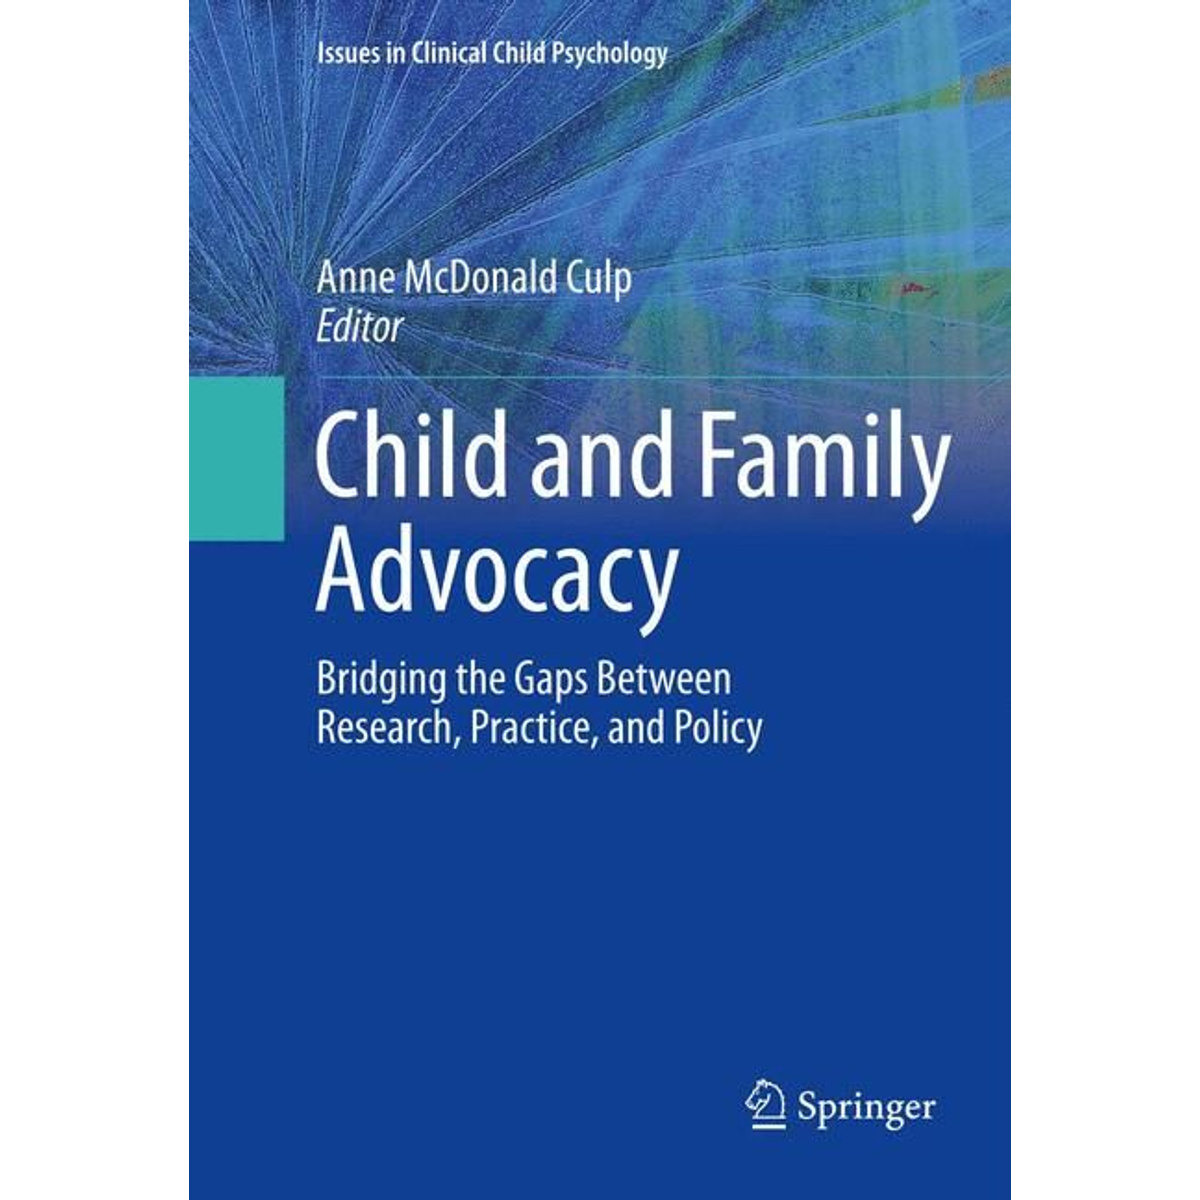 Child and Family Advocacy - Bridging the Gaps Between Research, Practice, and Policy